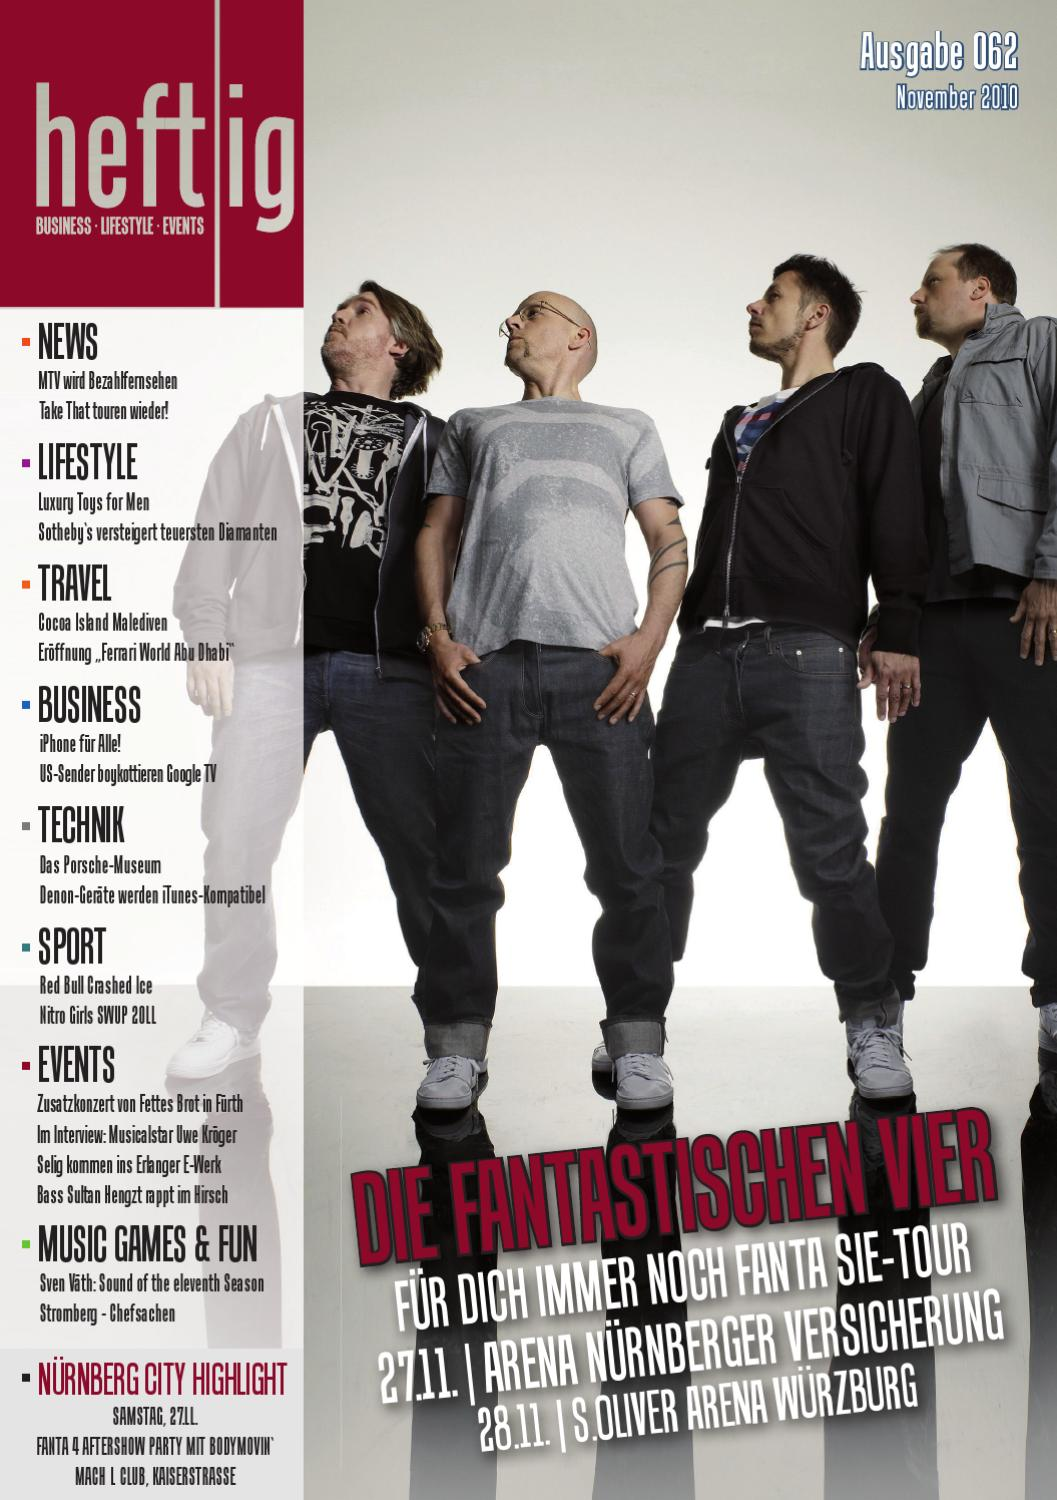 Ig Weisser Heft Ig Magazin November 2010 By Heftig Magazin Issuu